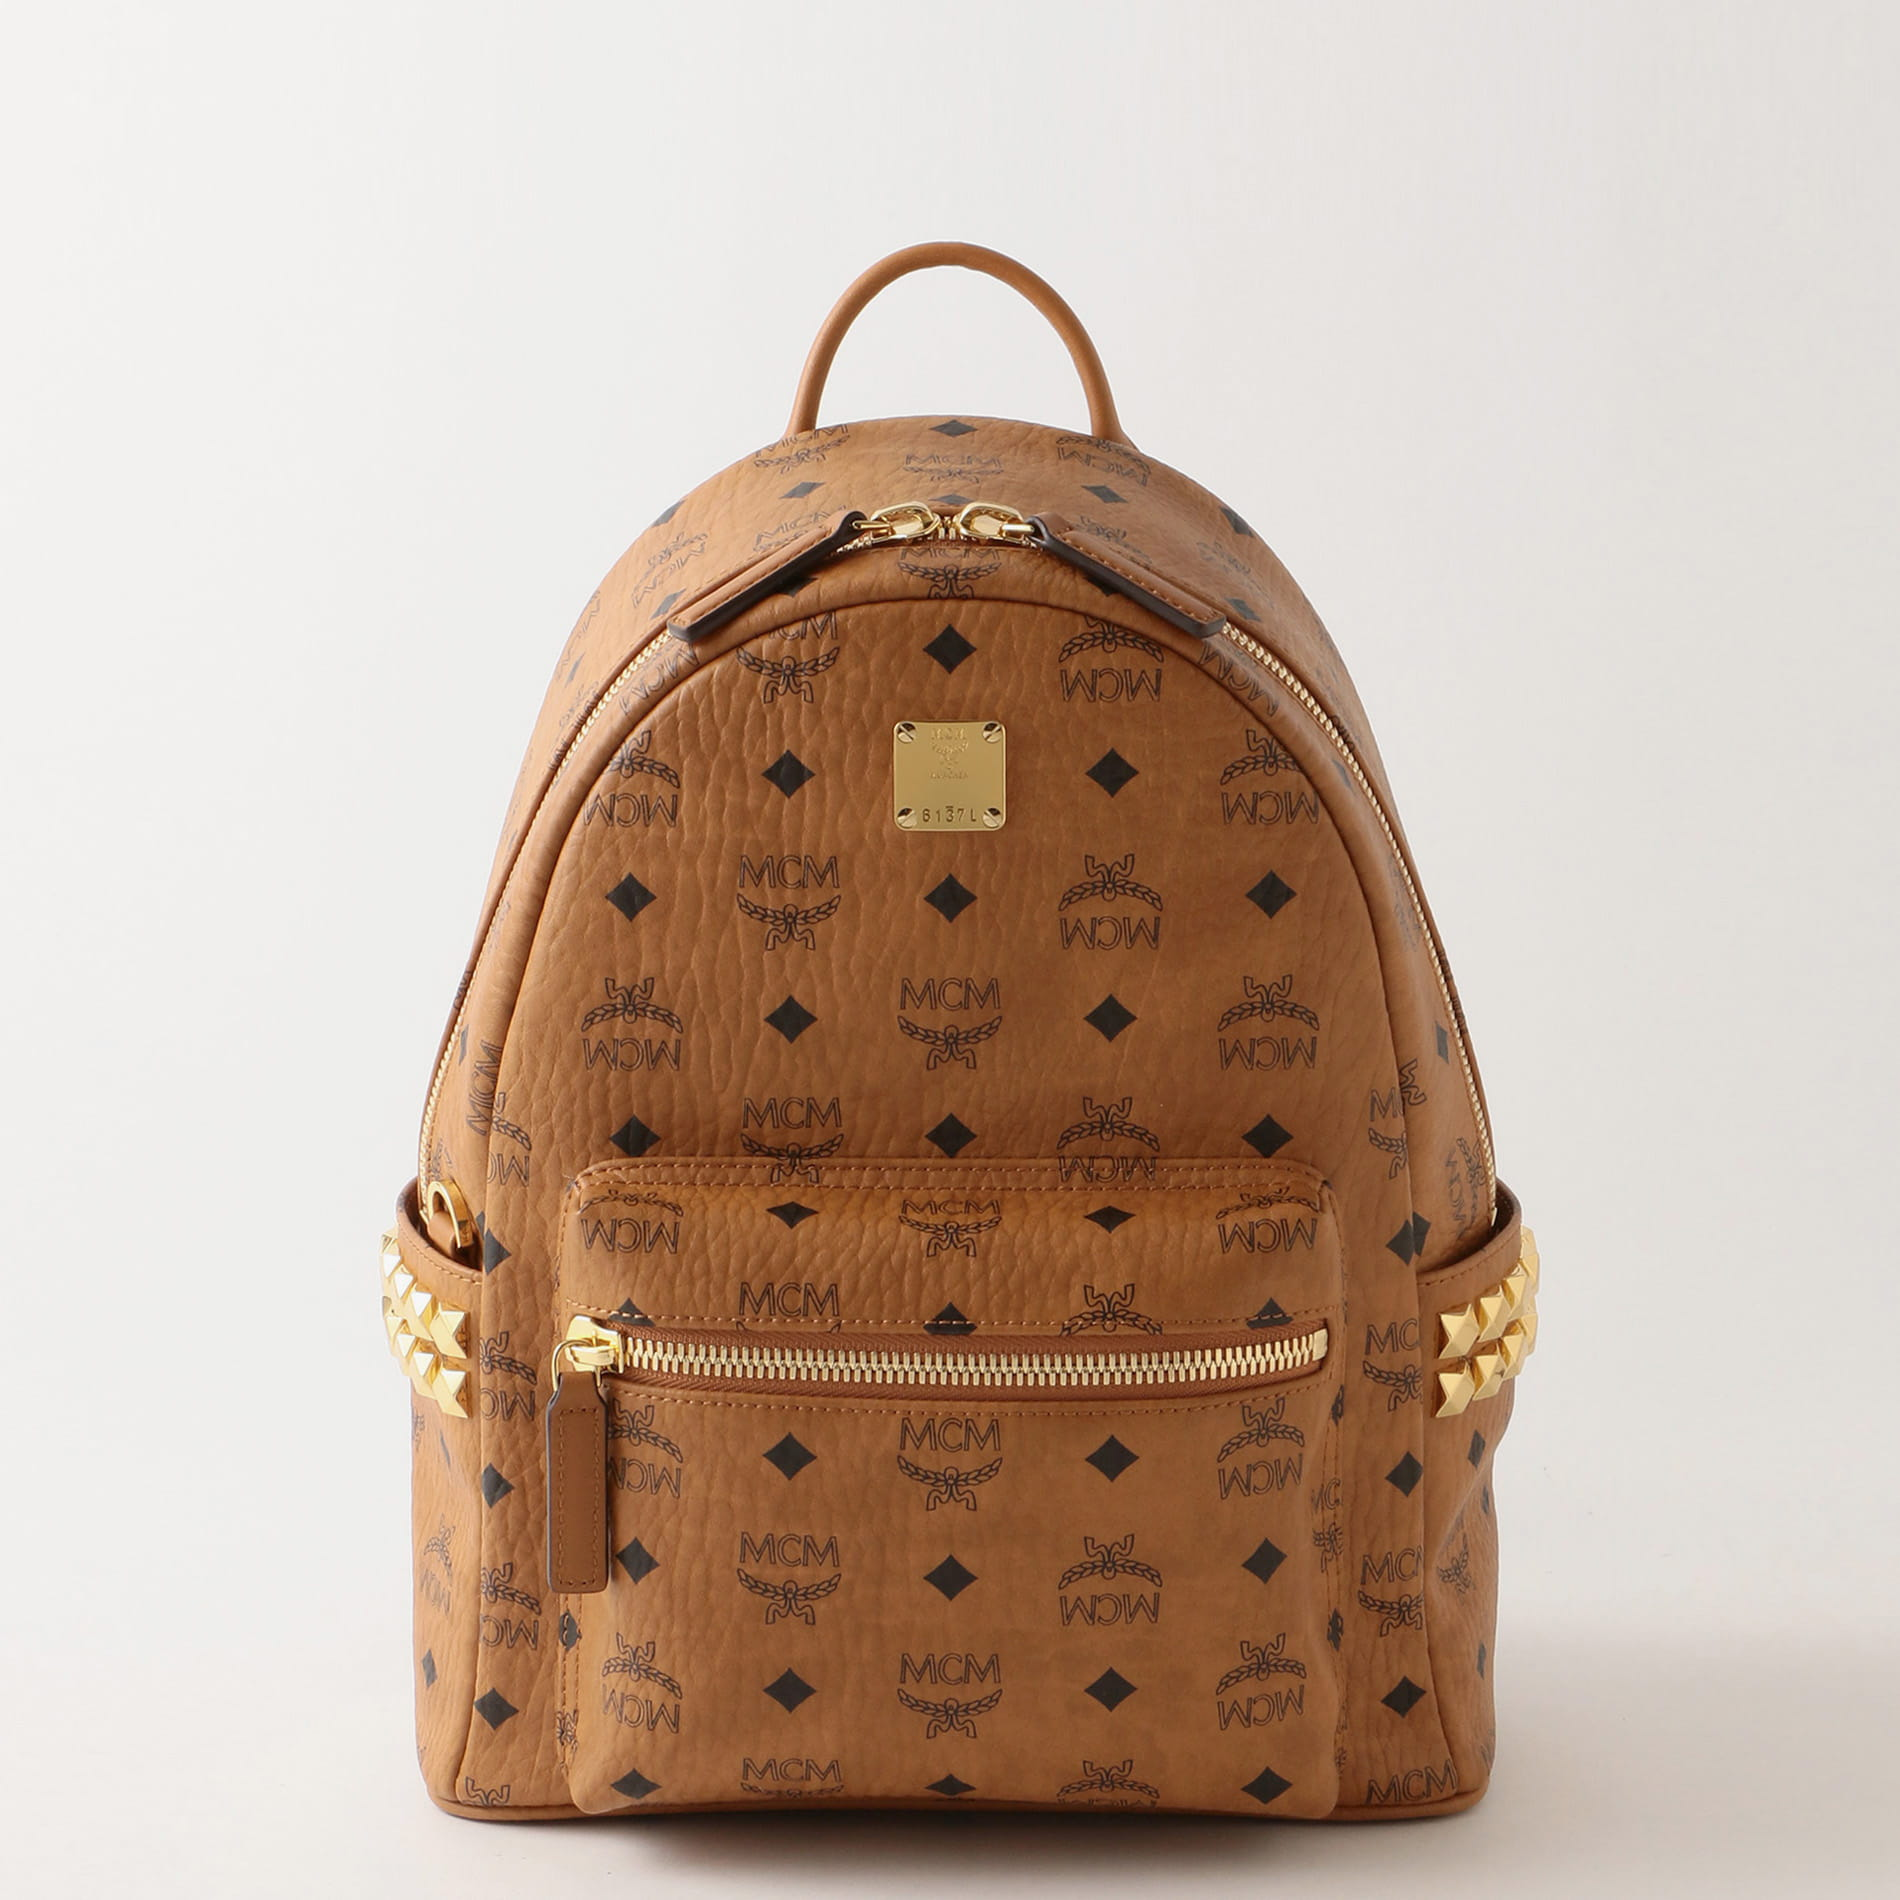 【MCM】WOMEN バックパック STARK BACKPACK 32 MMKAAVE15